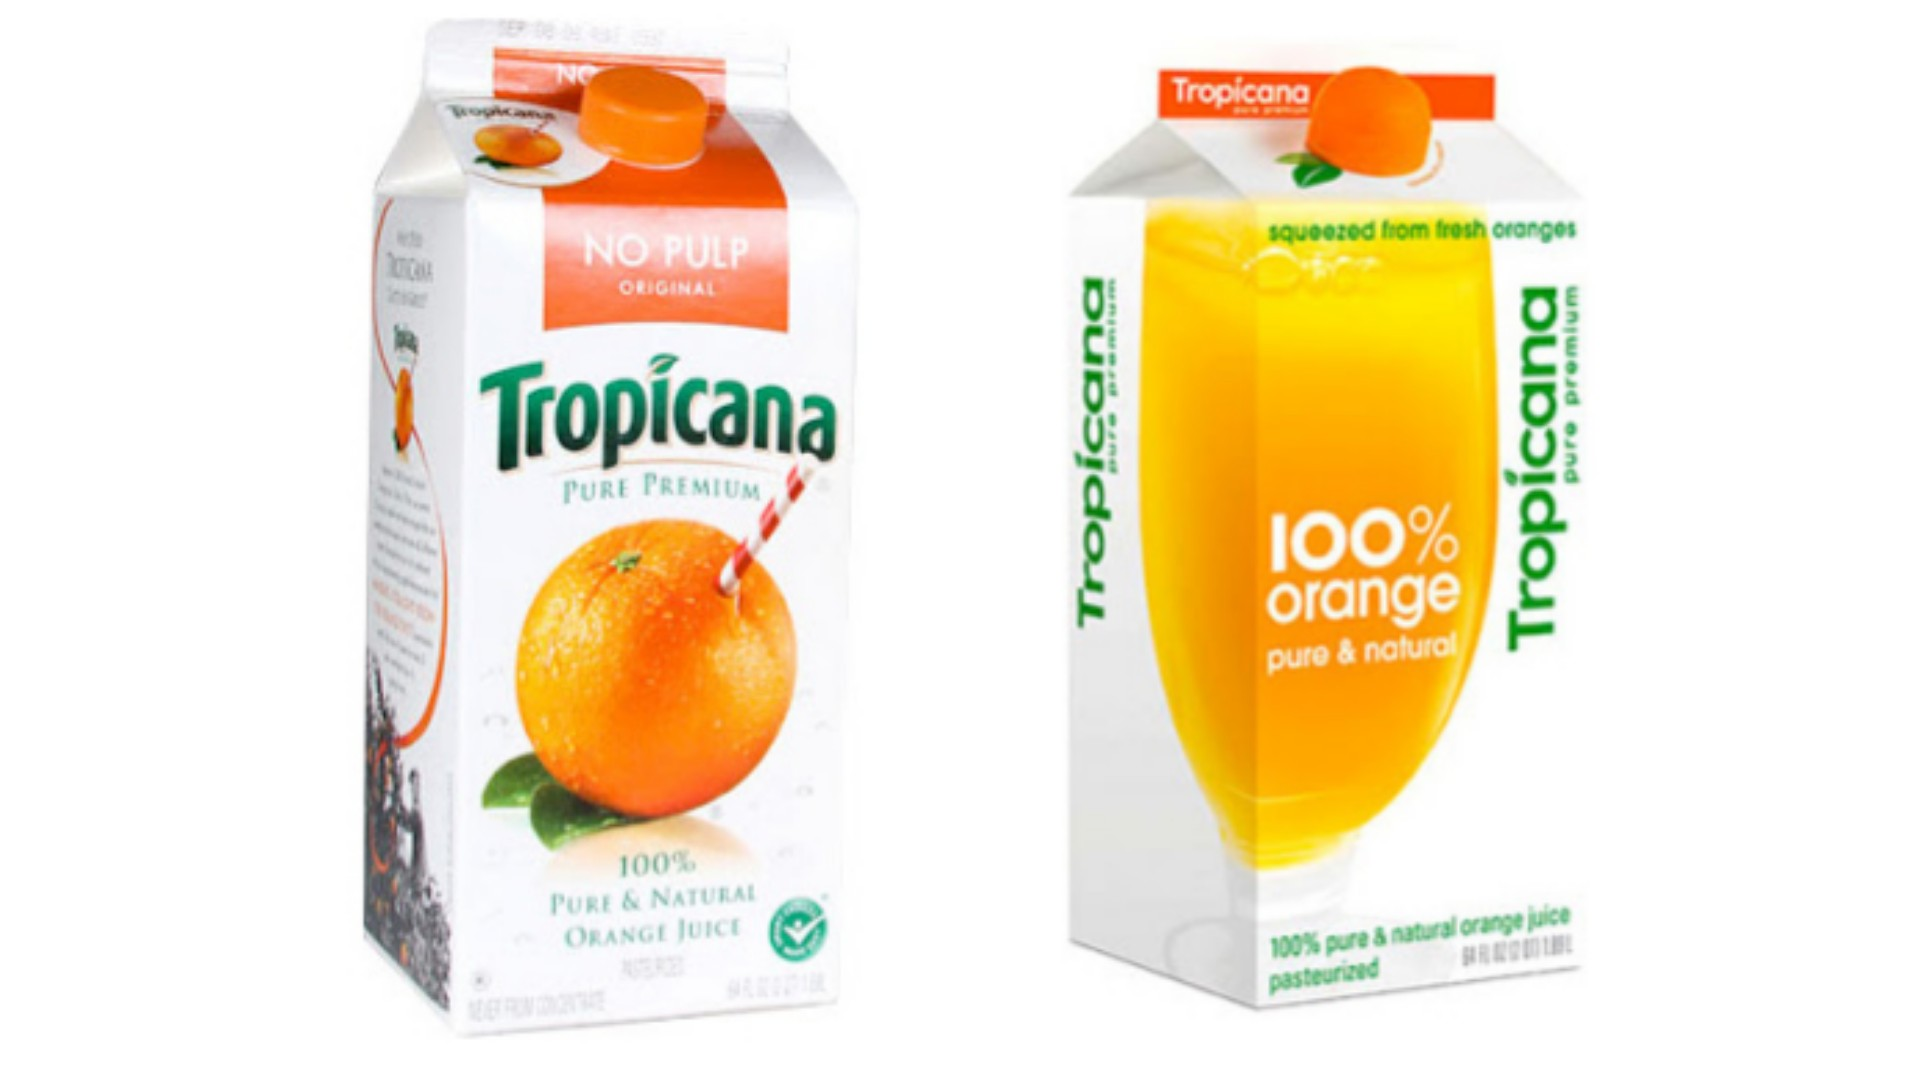 Tropicana Packaging Design